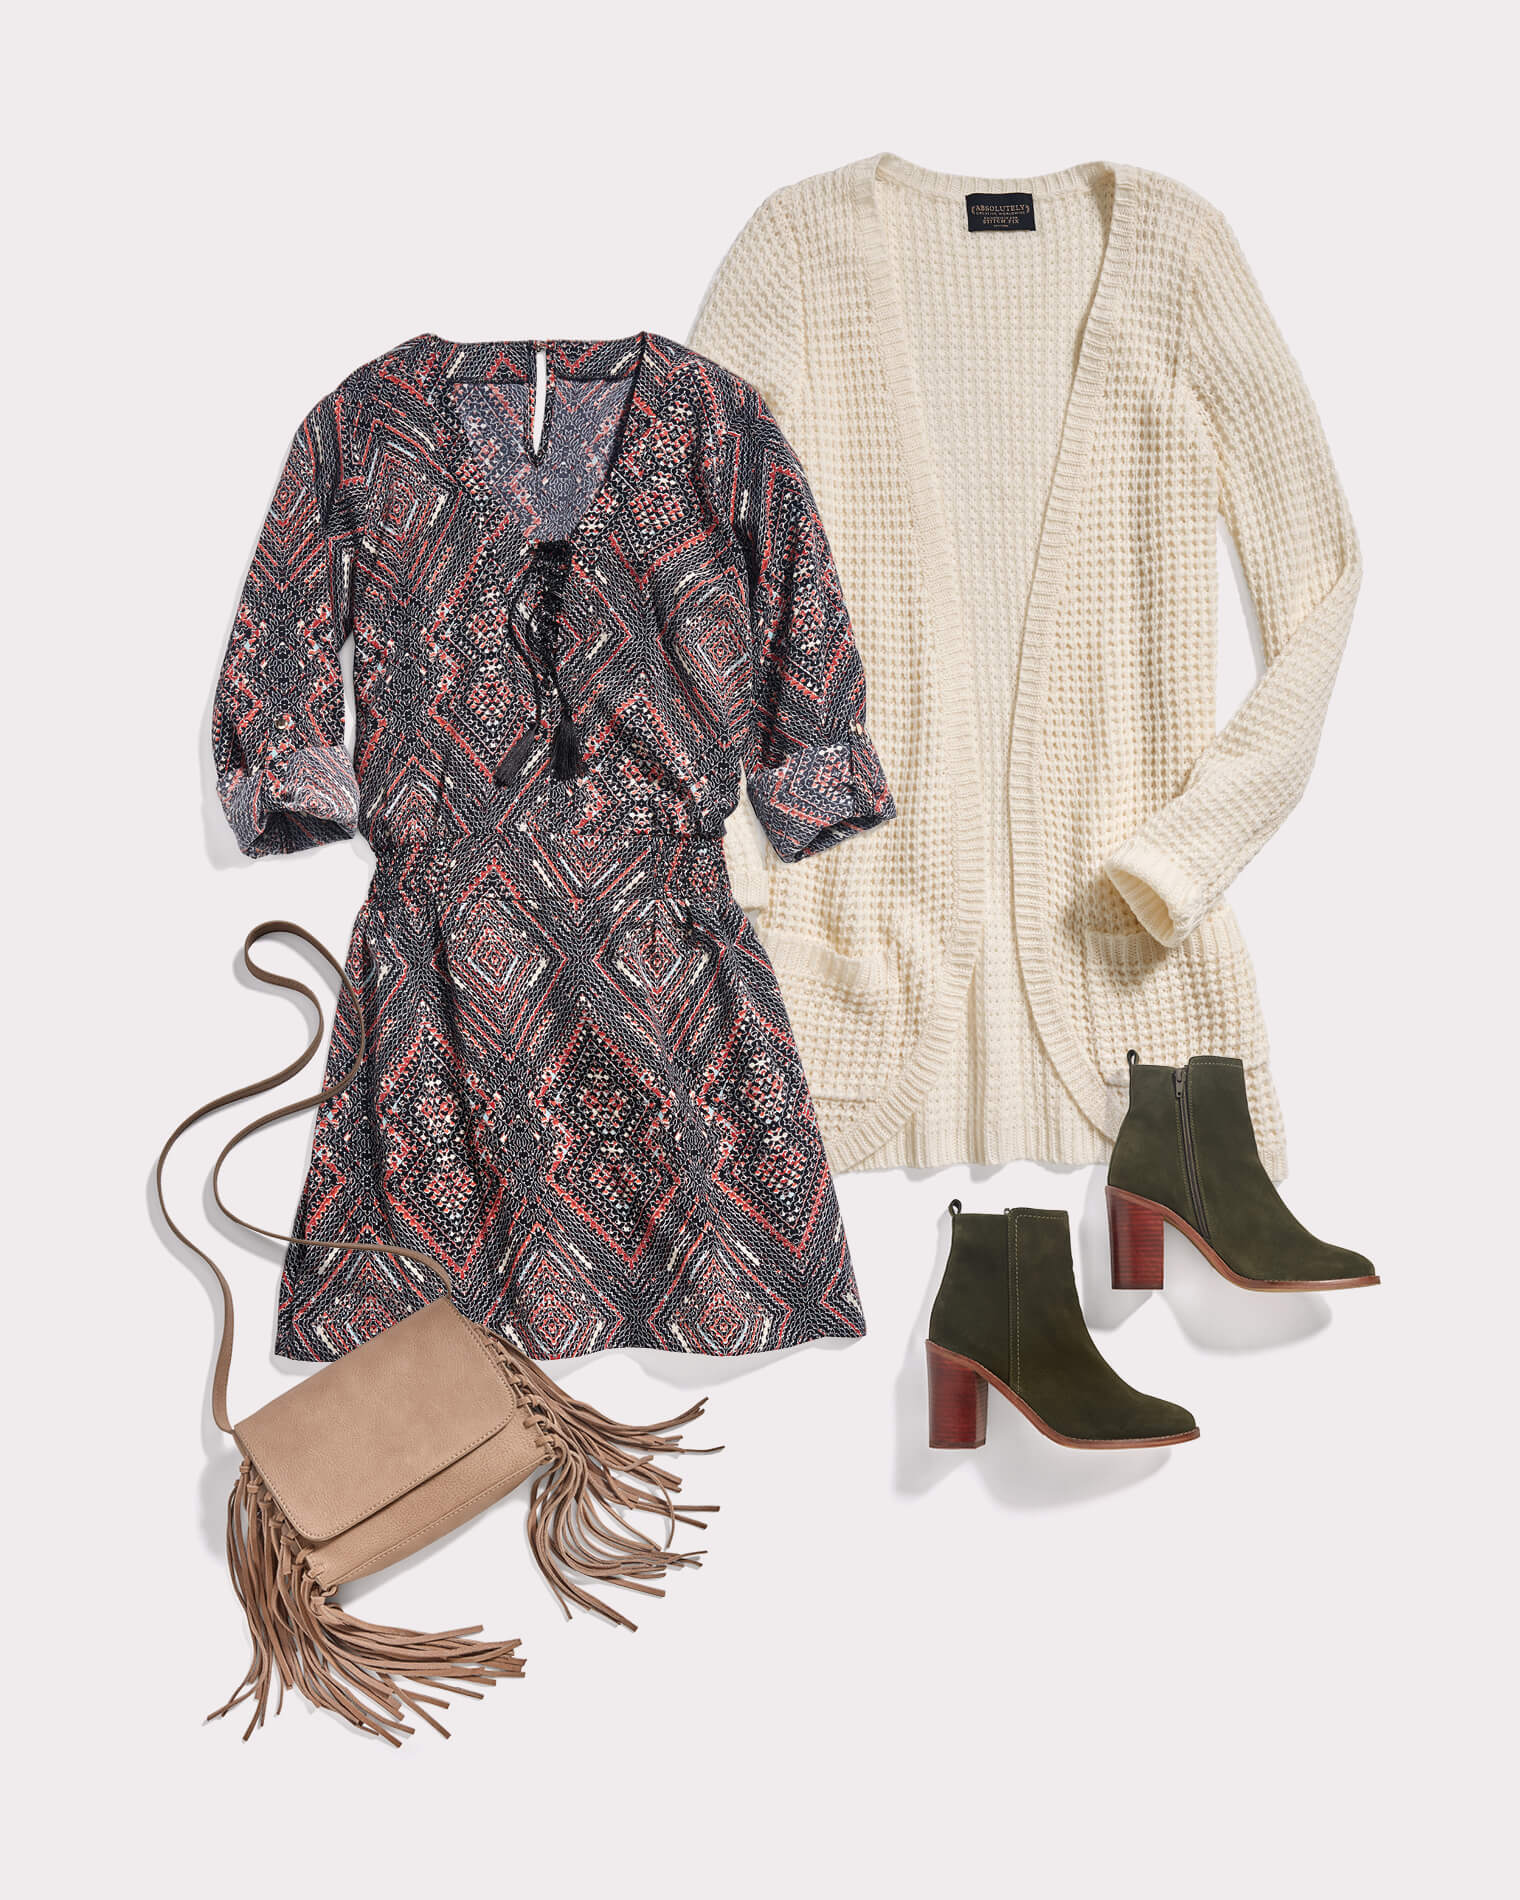 Ankle Boots Date Outfit